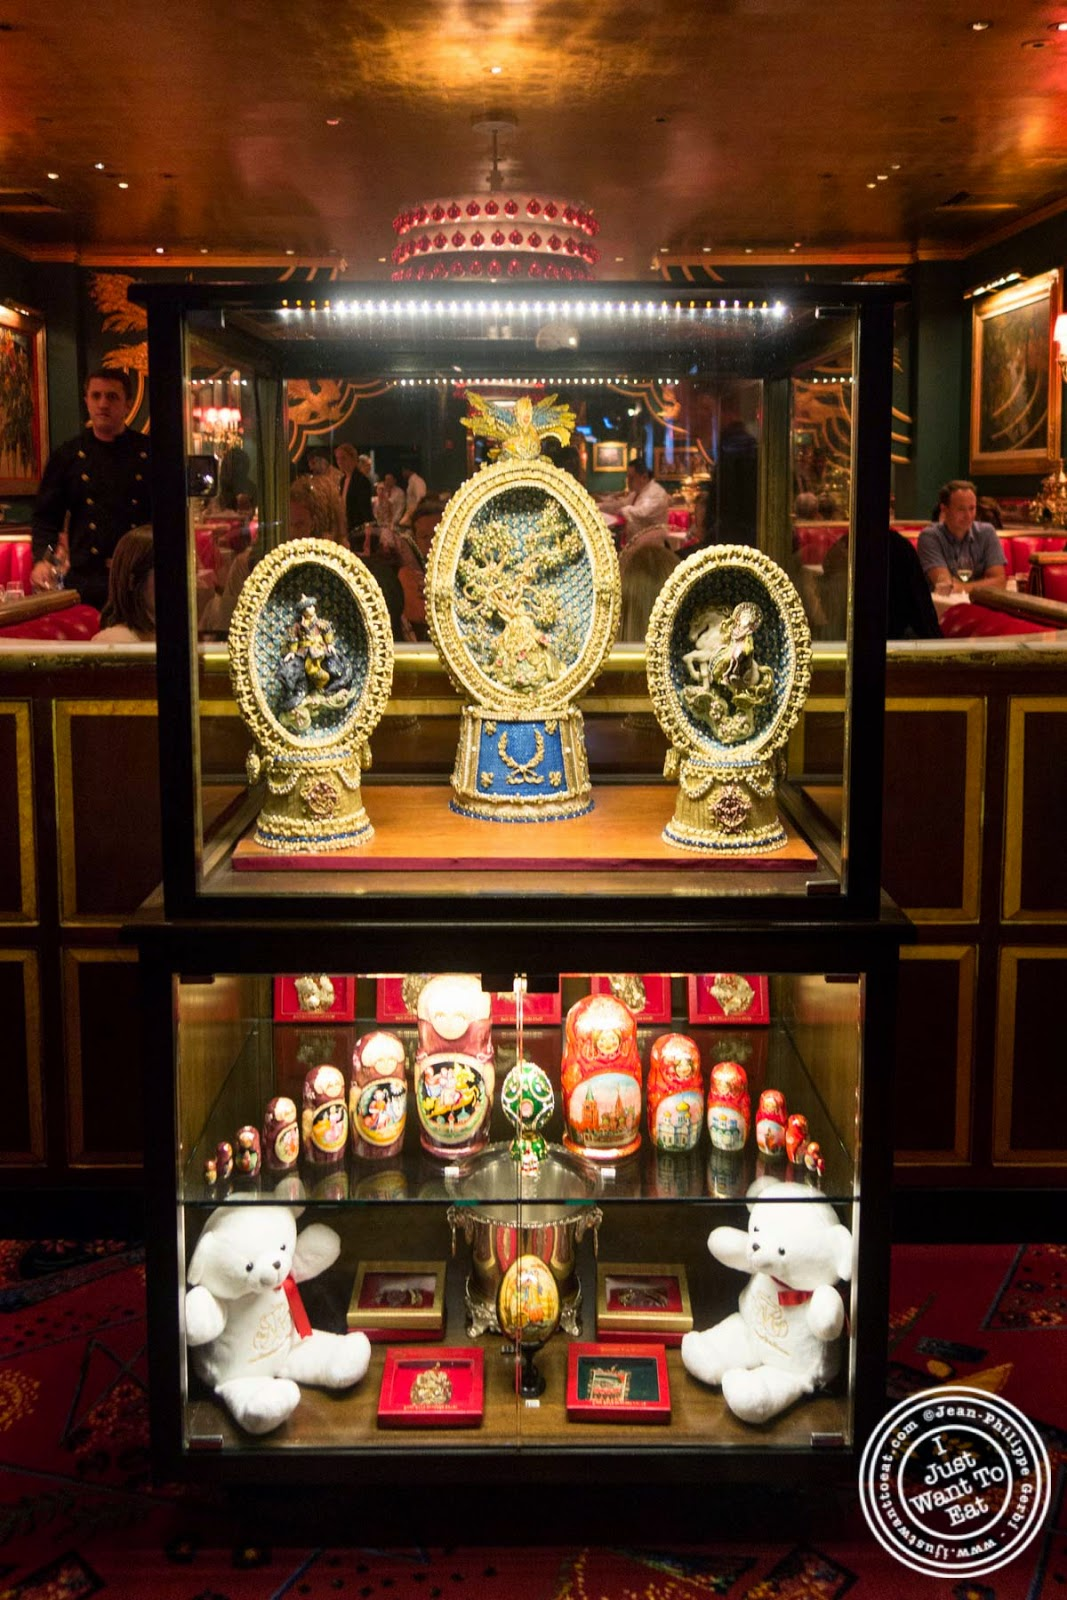 image of The Russian Tea Room in NYC, NY